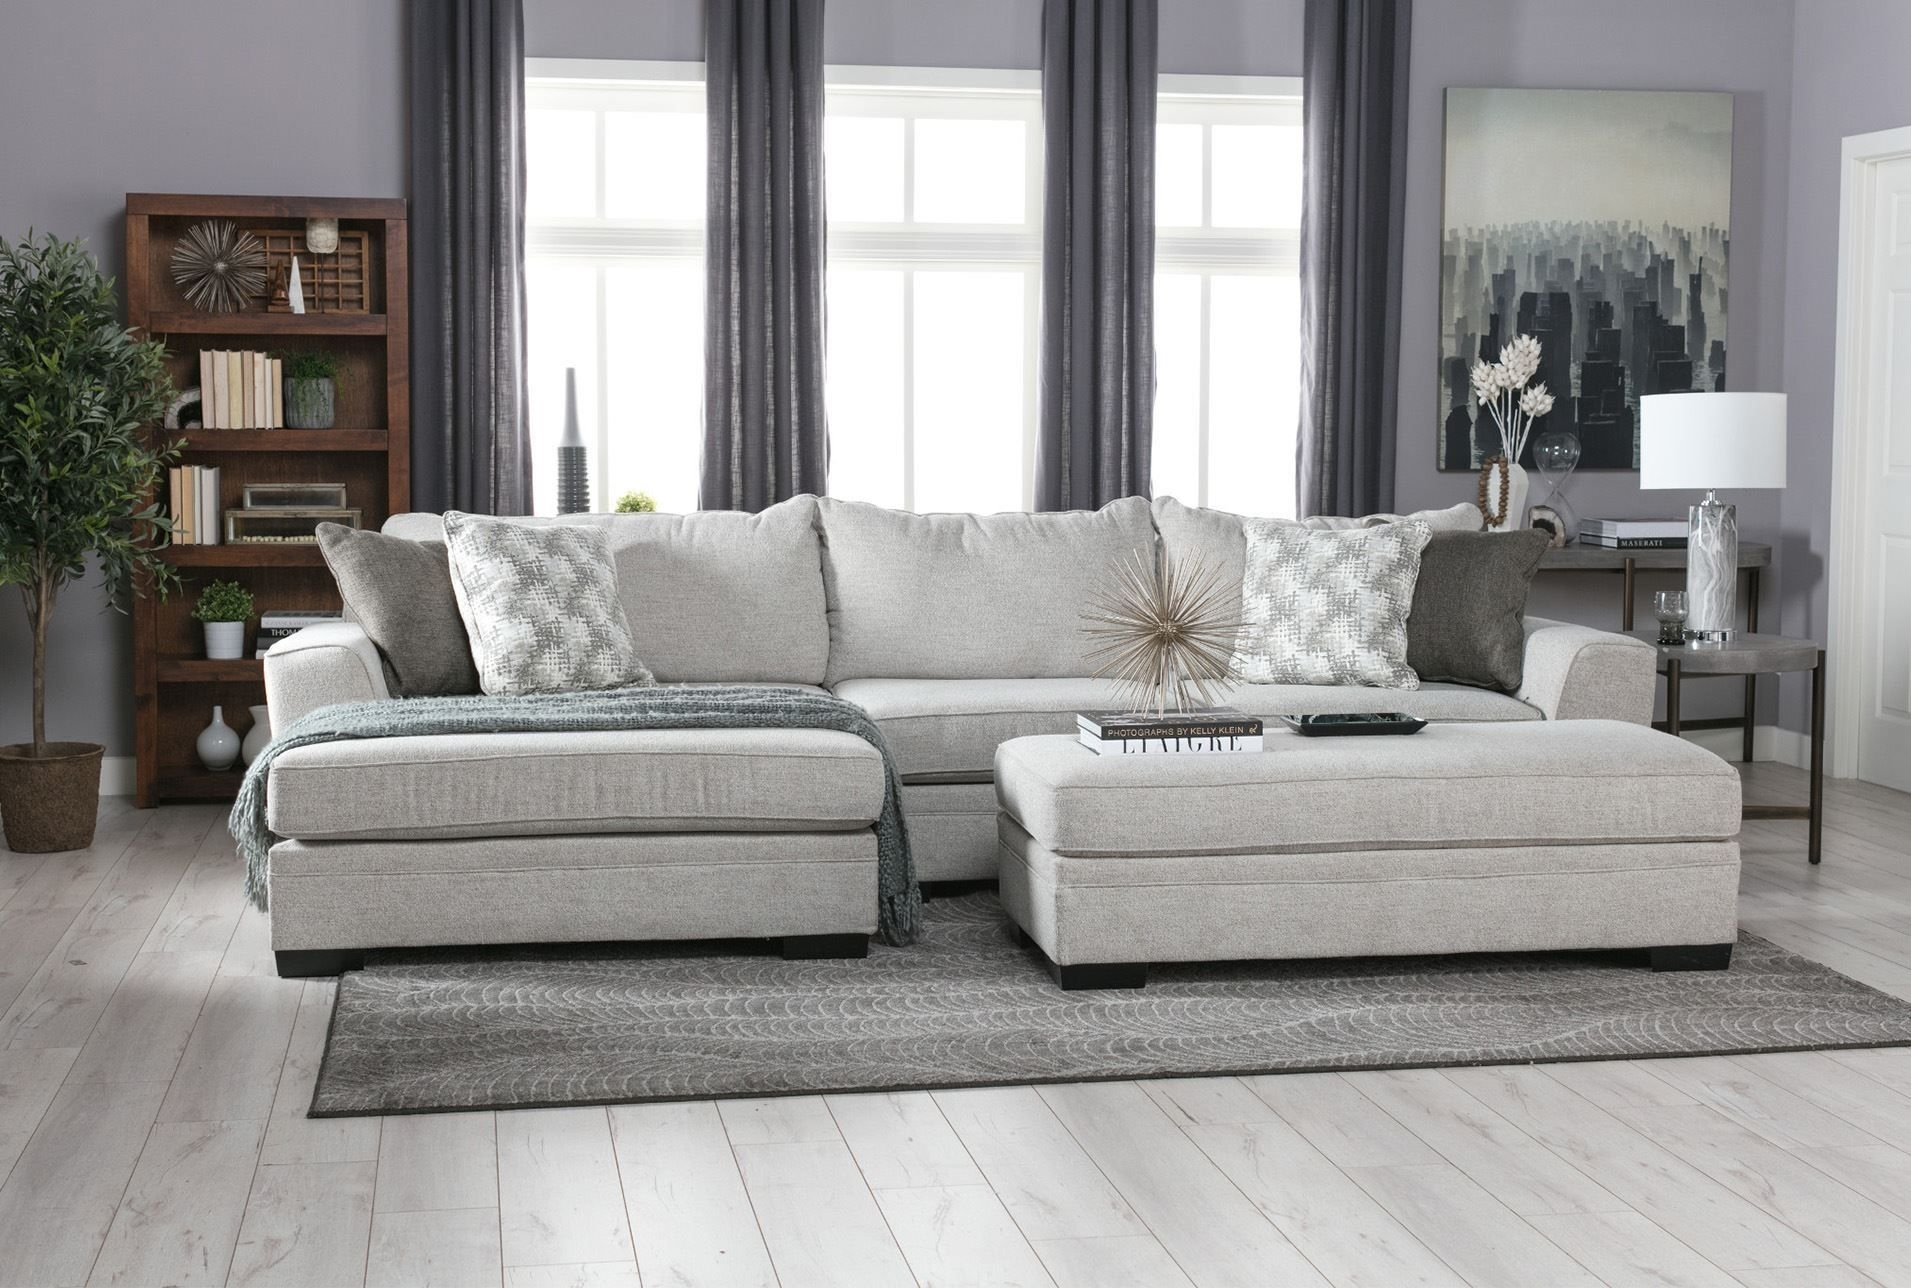 Delano 2 Piece Sectional W/laf Oversized Chaise | Sylvia Son with Delano 2 Piece Sectionals With Laf Oversized Chaise (Image 14 of 30)